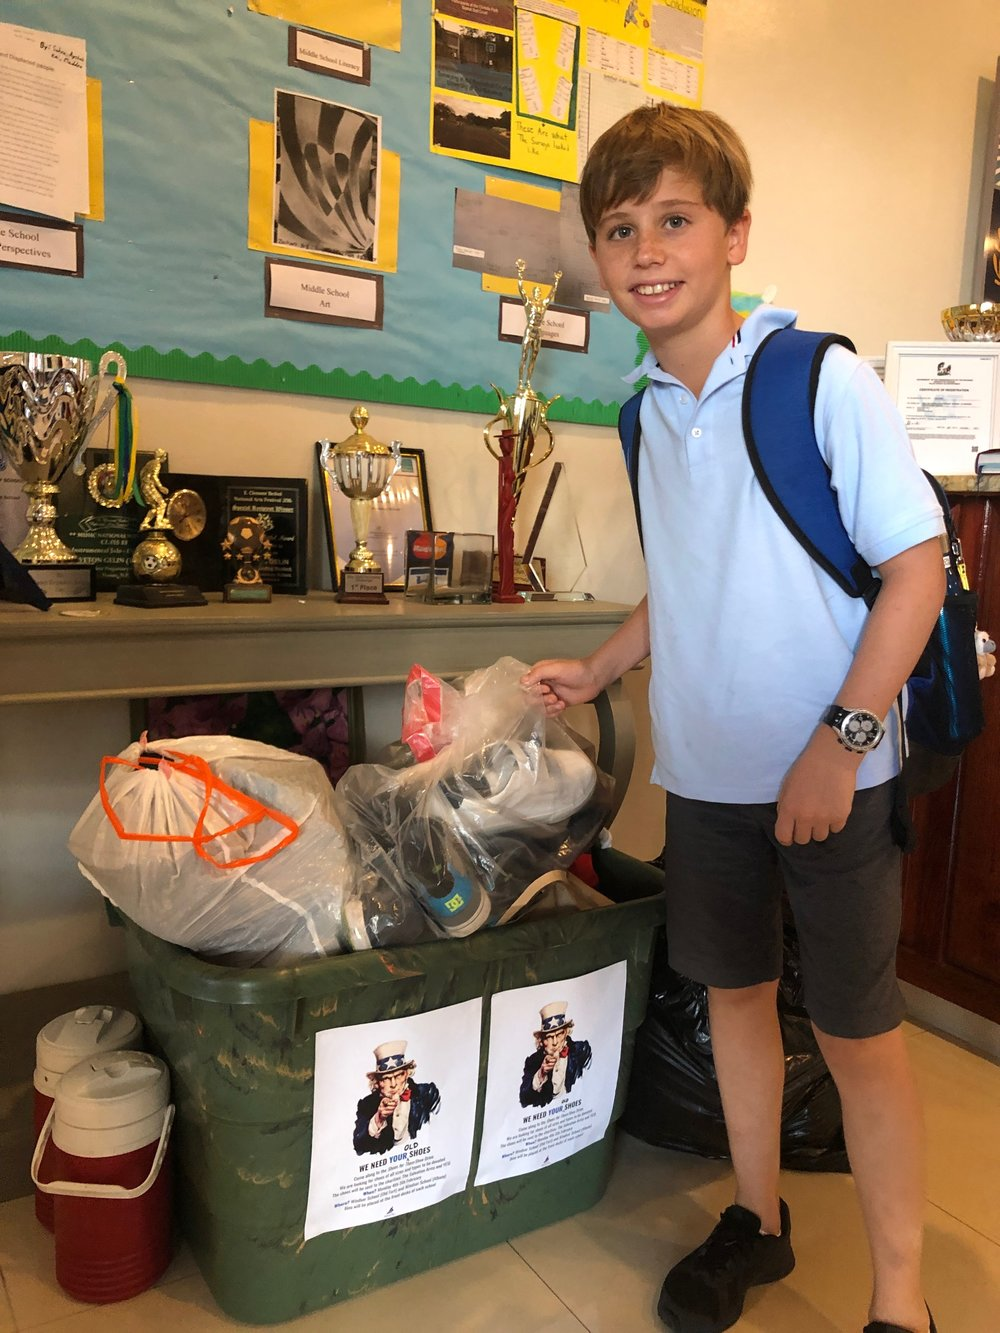 A happy Windsor student admiring the piles of shoes donated!